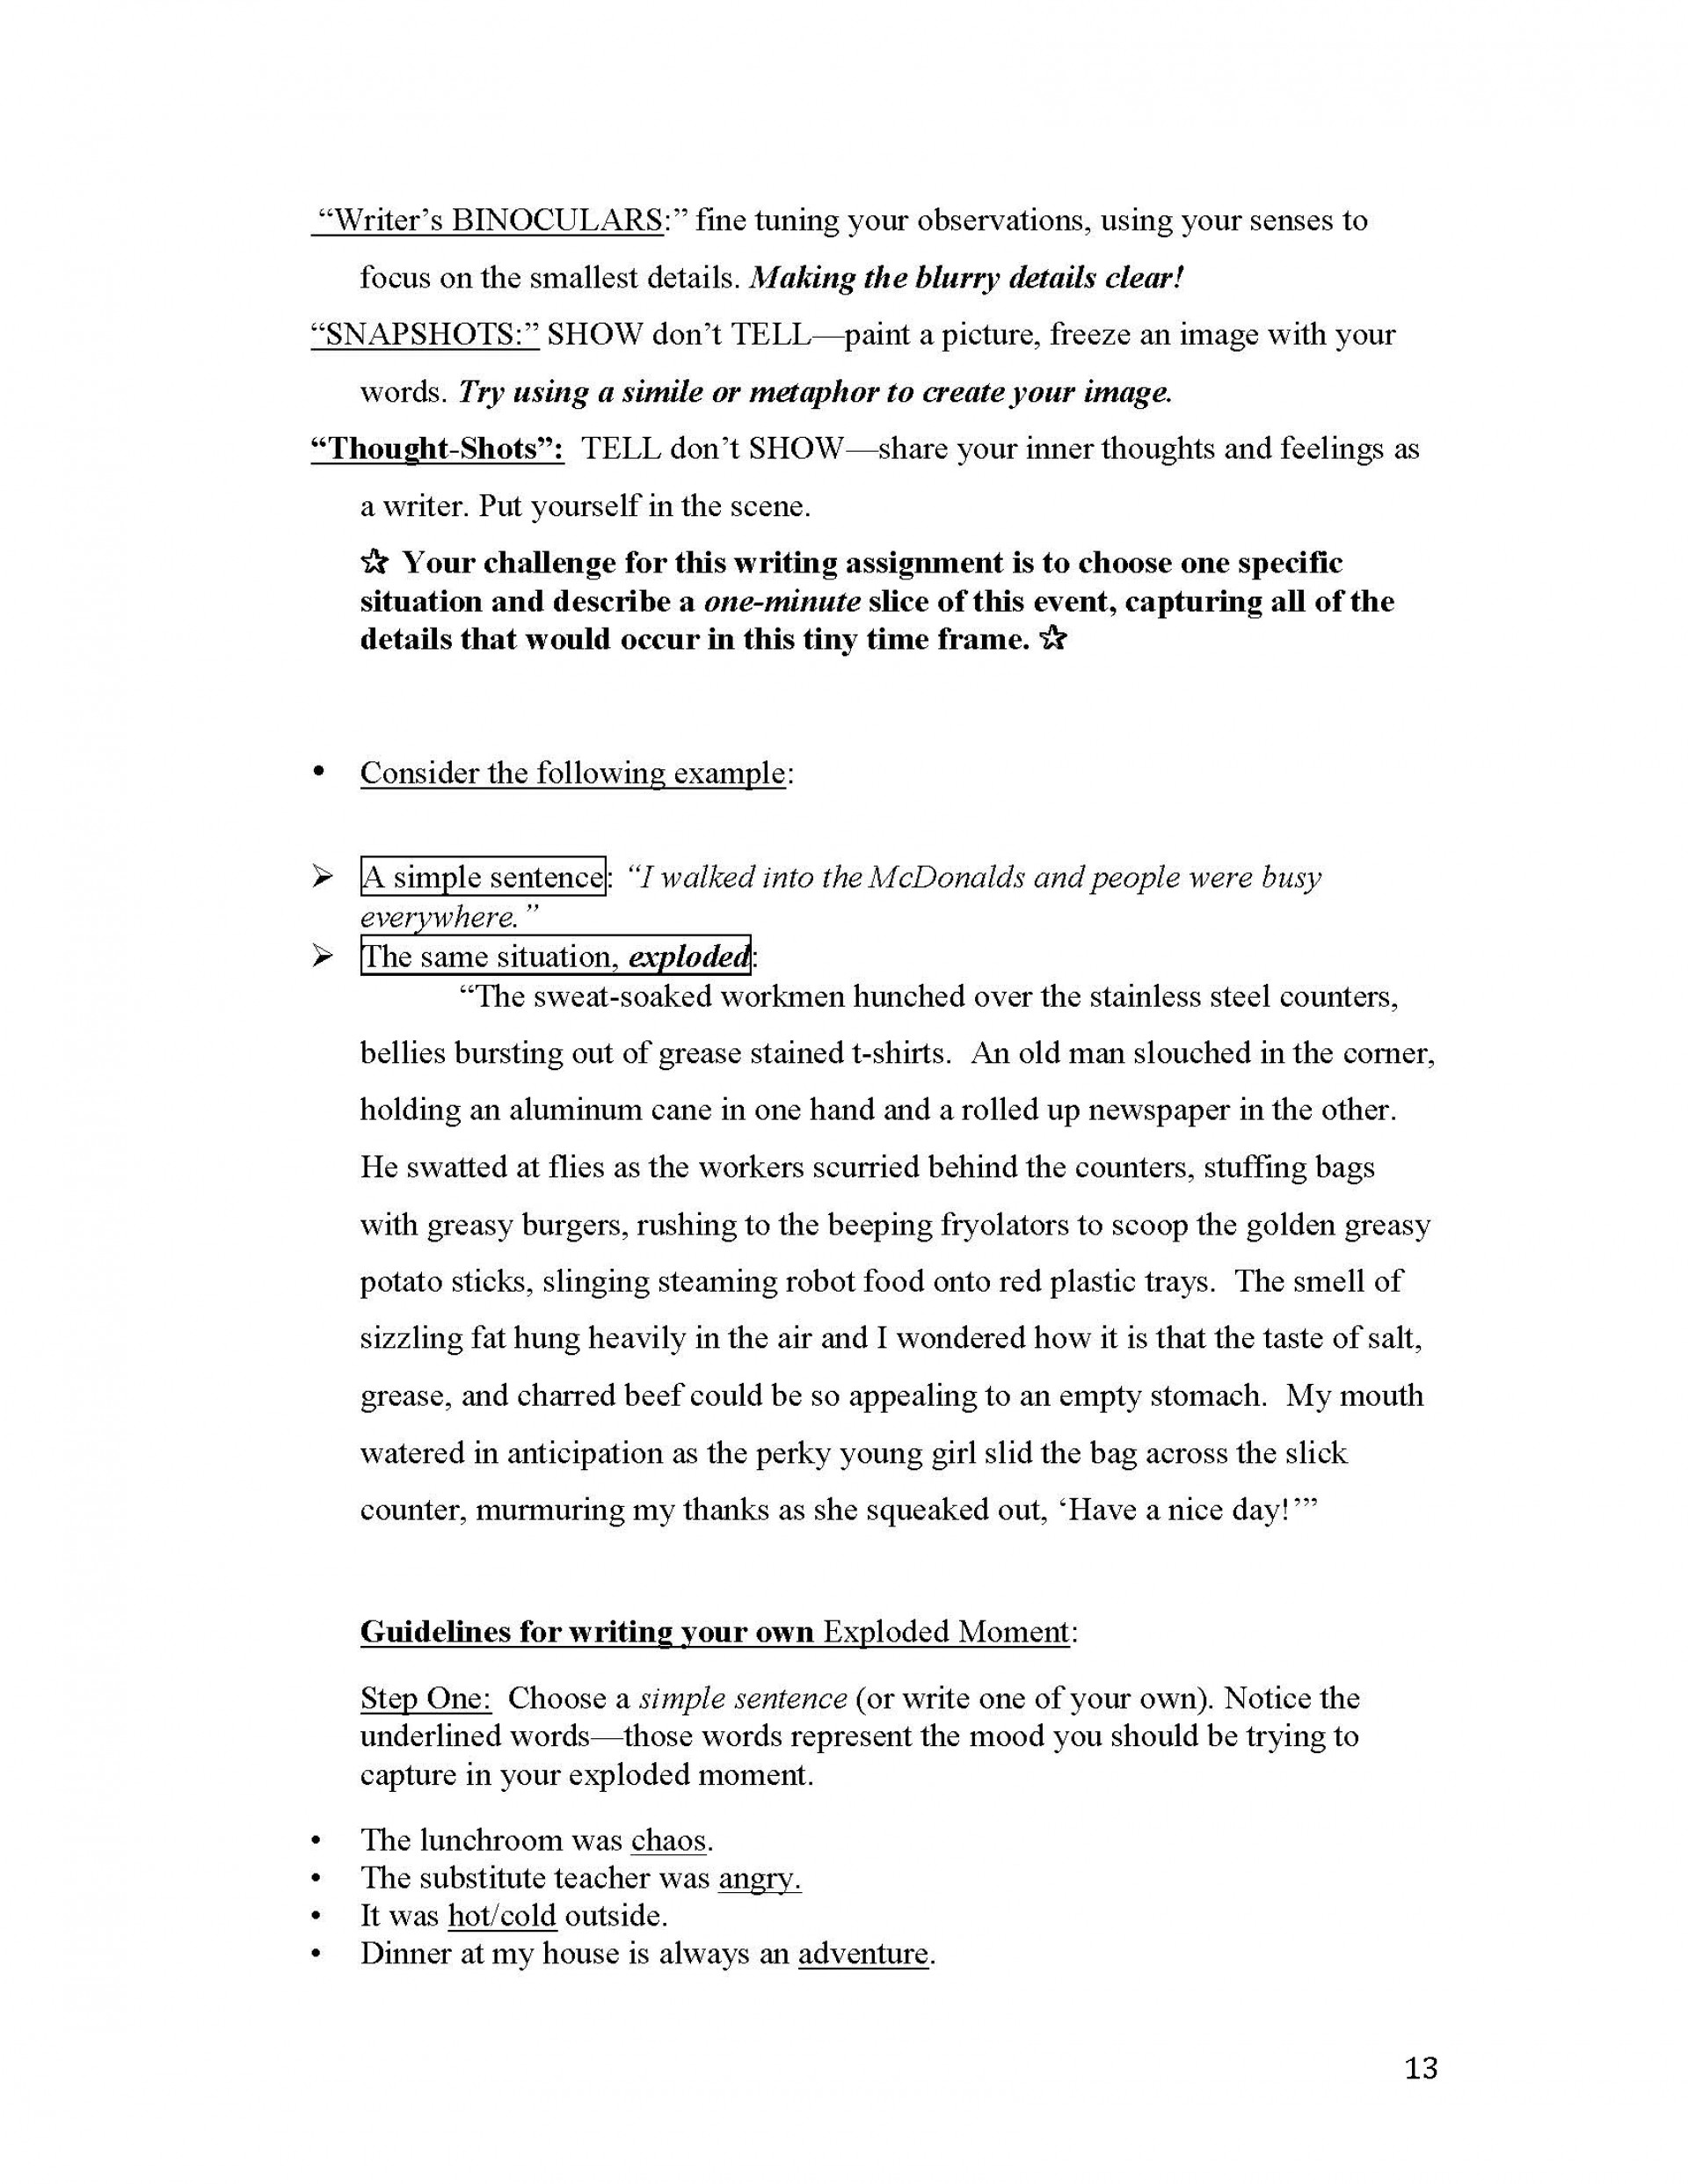 013 Essay Example Literacy Narrative Introduction Paragraph Of Service Good Examples Unit 1 Instructor Copy Pa Format How To Start Phenomenal Personal Sample Digital 1920